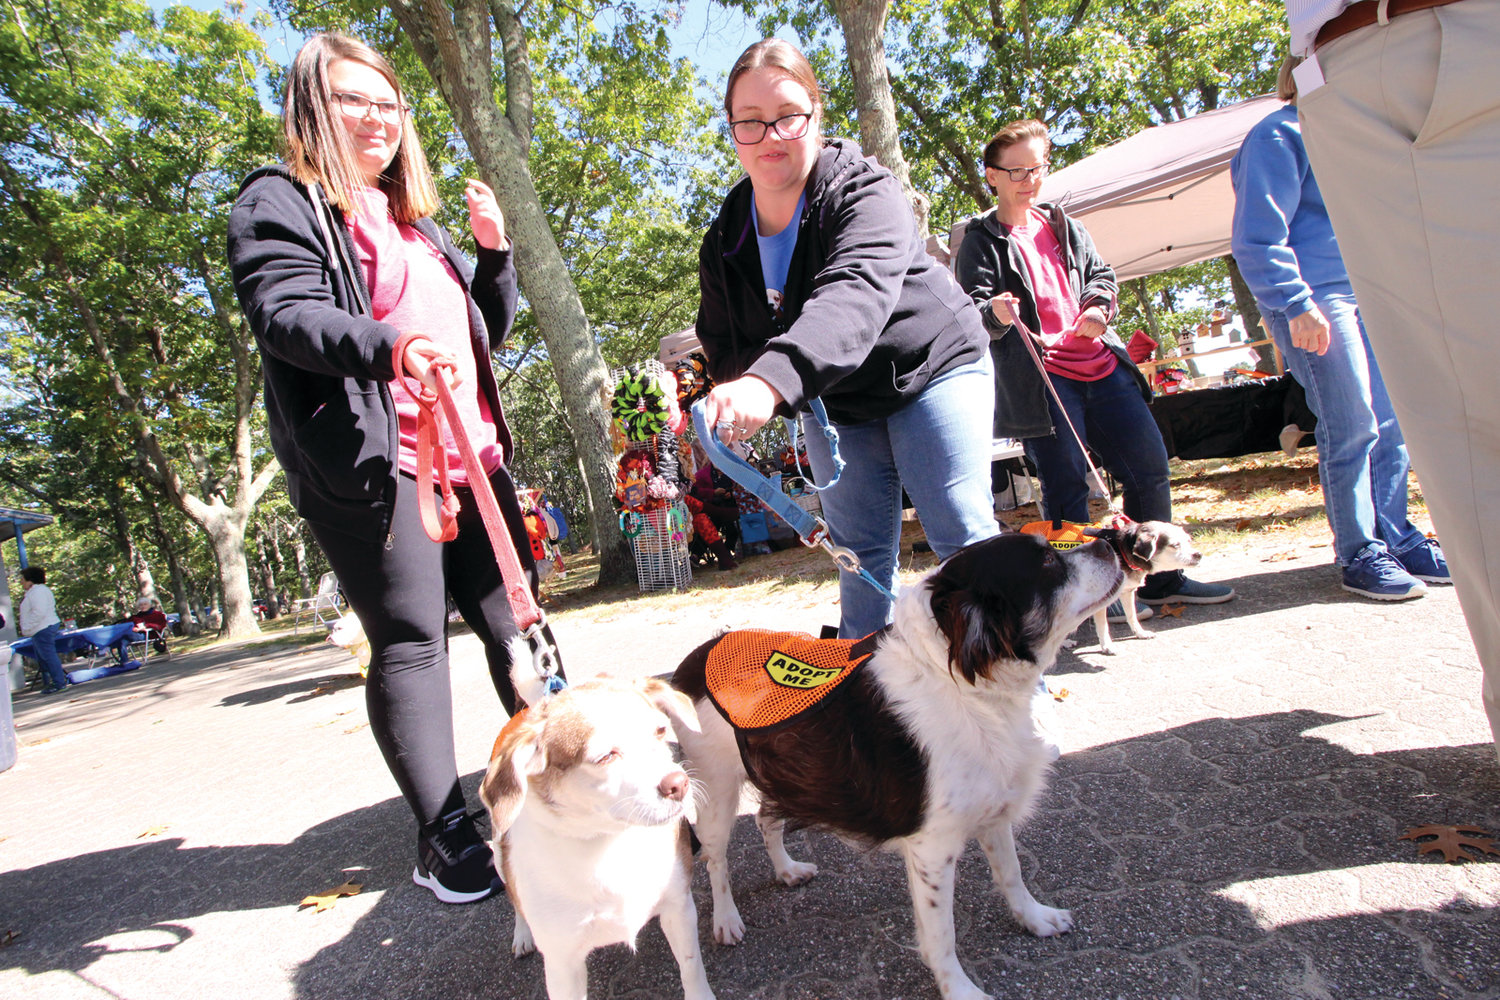 LOVING THE ATTENTION: Two of the Warwick Animal Shelter dogs up for adoption greeted those attending the Friends of the Warwick Animal Shelter event Saturday at City Park.